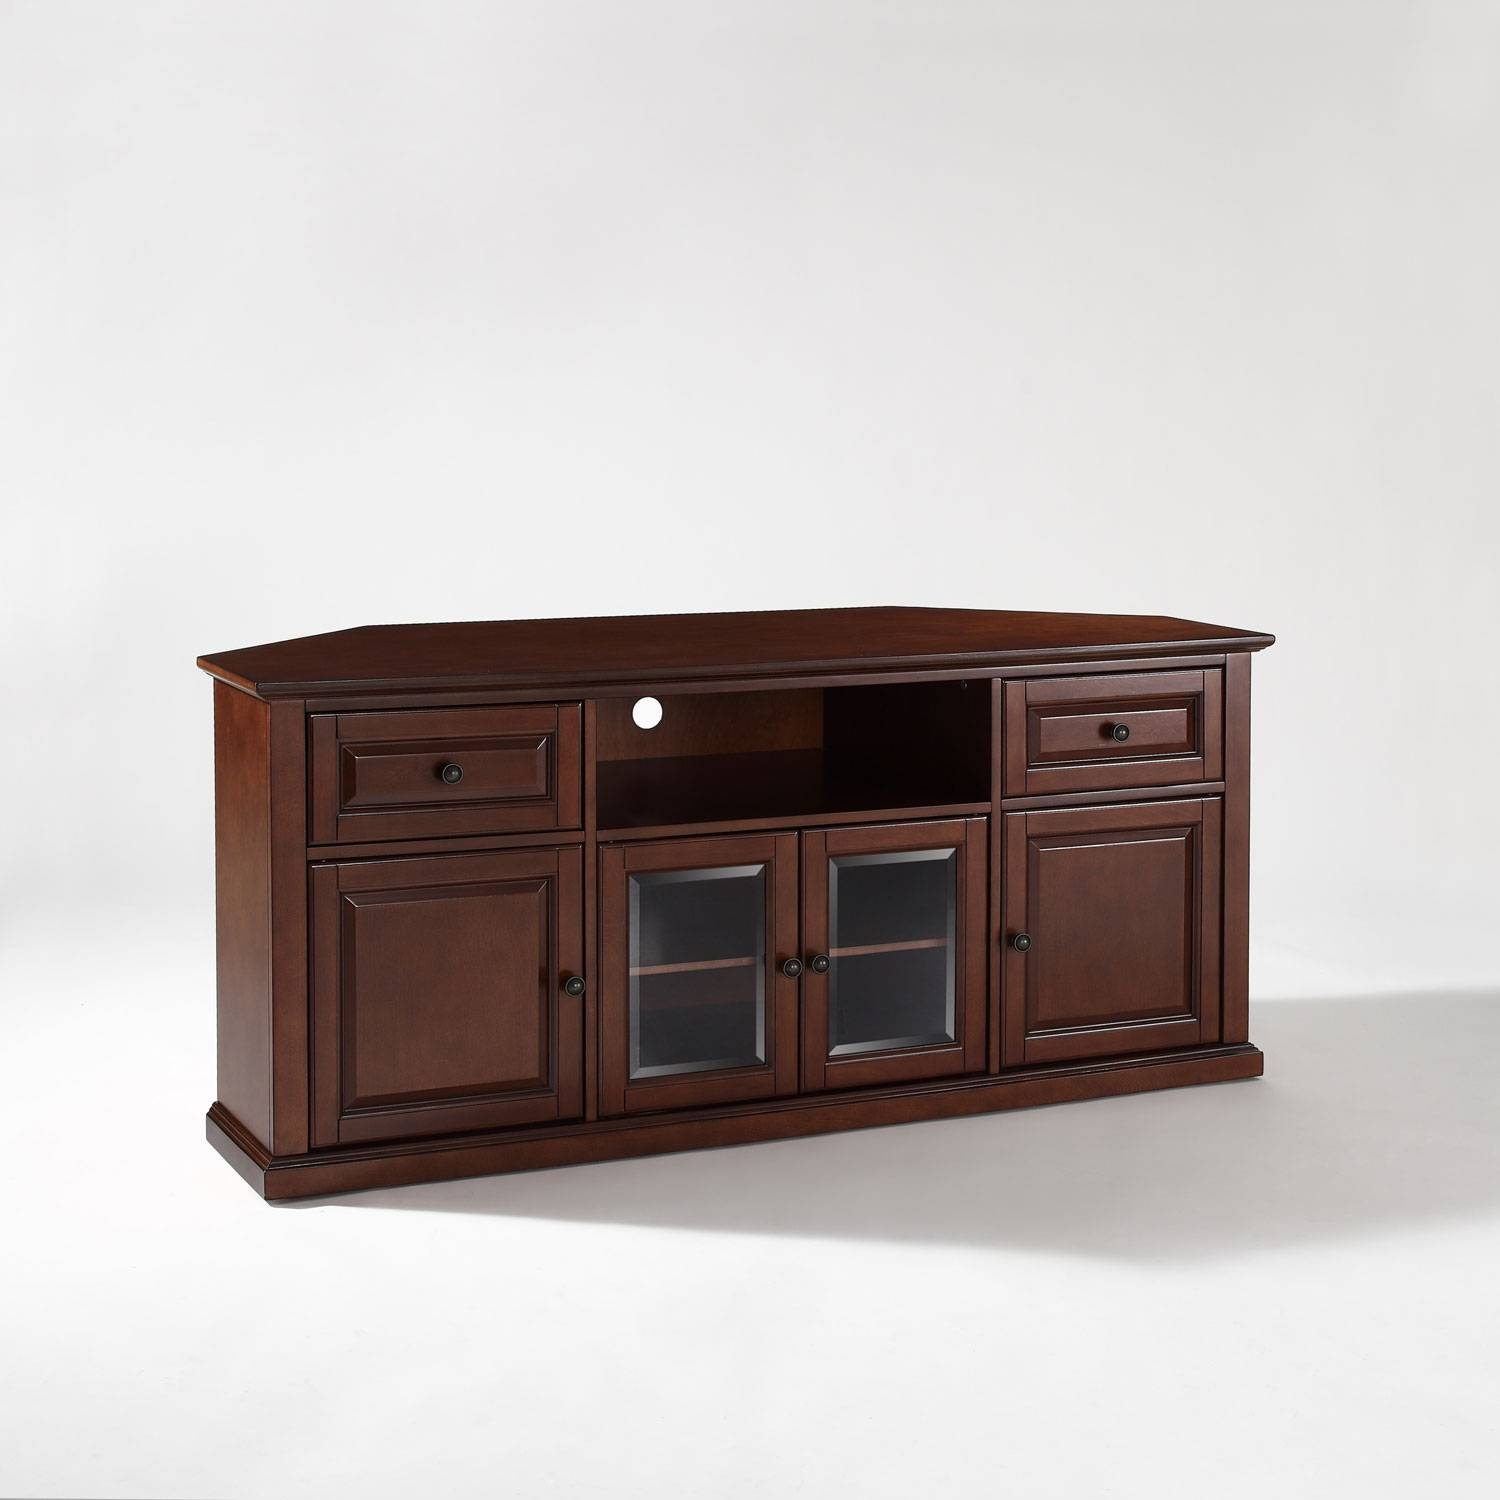 Tv Stands & Cabinets On Sale | Bellacor for Retro Corner Tv Stands (Image 12 of 15)